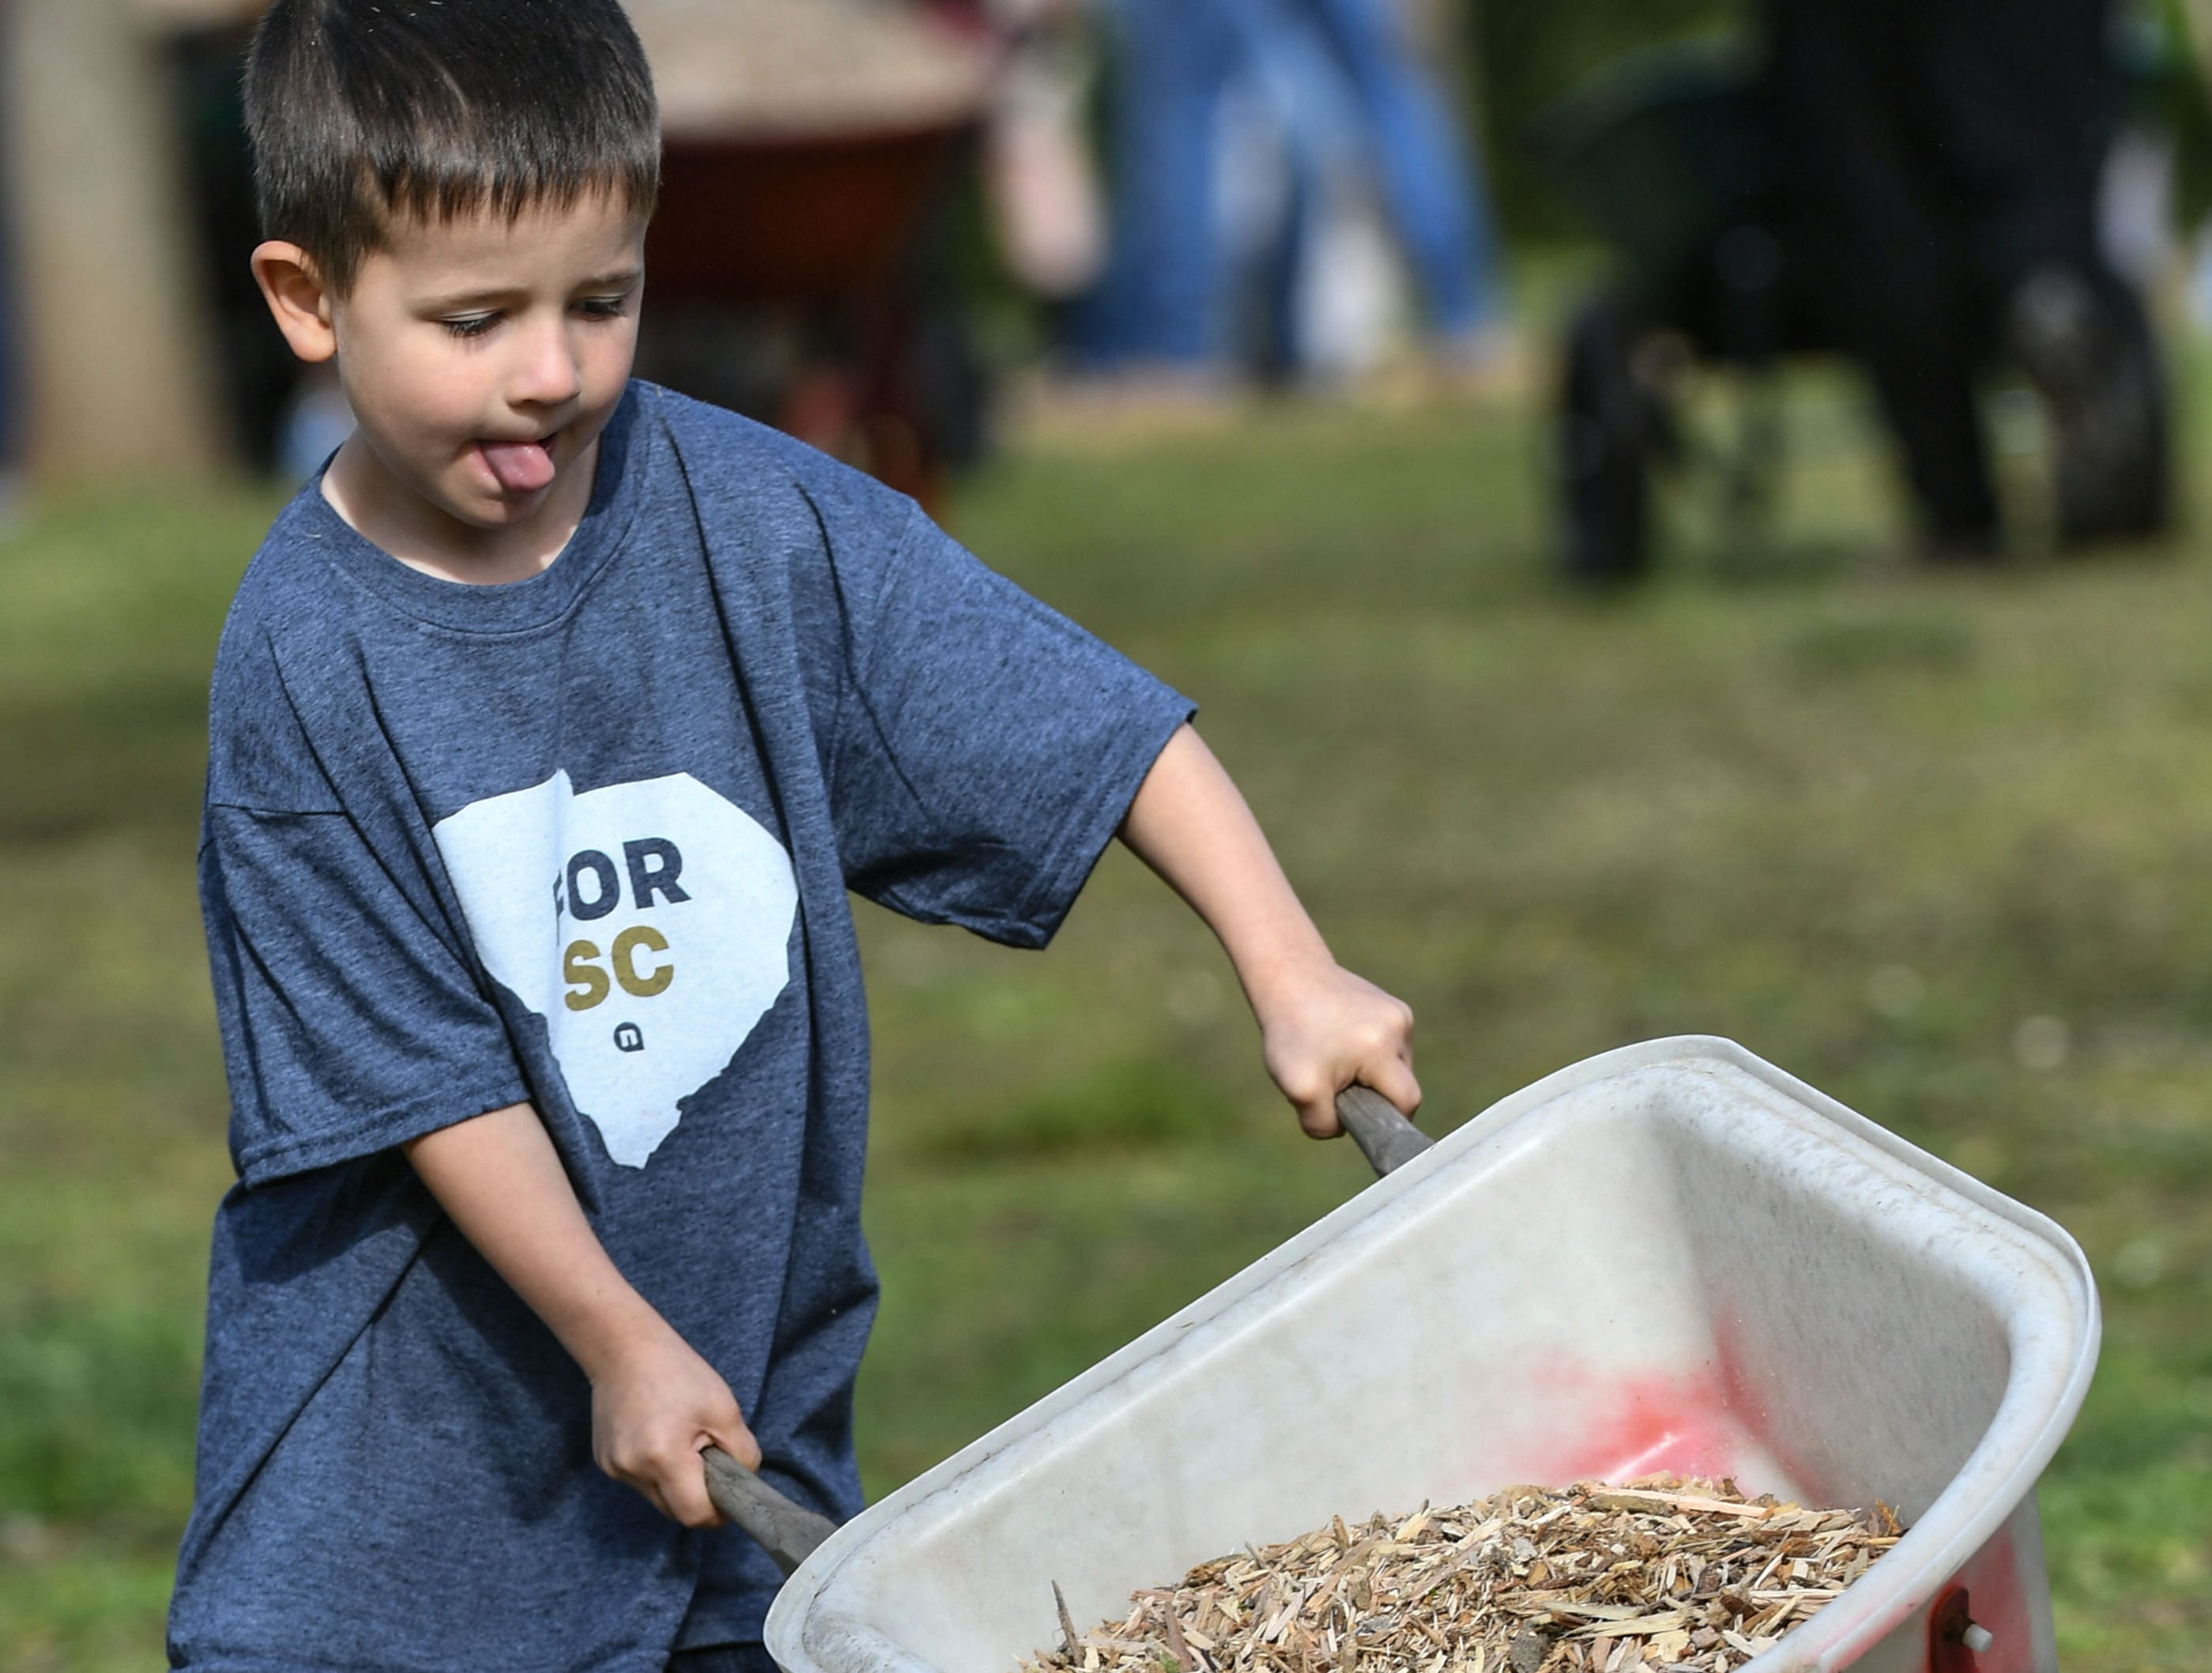 Volunteer Levi Dunagan from NewSpring Church in Anderson helps spread mulch with his miniature wheelbarrow during KidVenture cleanup day at the Anderson Sports and Entertainment Complex Saturday. A group of 310 volunteers, 250 from NewSpring Church, helped spread 100 cubic yards (70,000 pounds) of mulch, and brush 30 gallons of stain on the fences, pick up trash, and trim trees and shrubs at the park which opened 20 years ago in 1999. Across South Carolina, the church helped with community cleanup and beautification, including 12 locations in Anderson County Saturday.